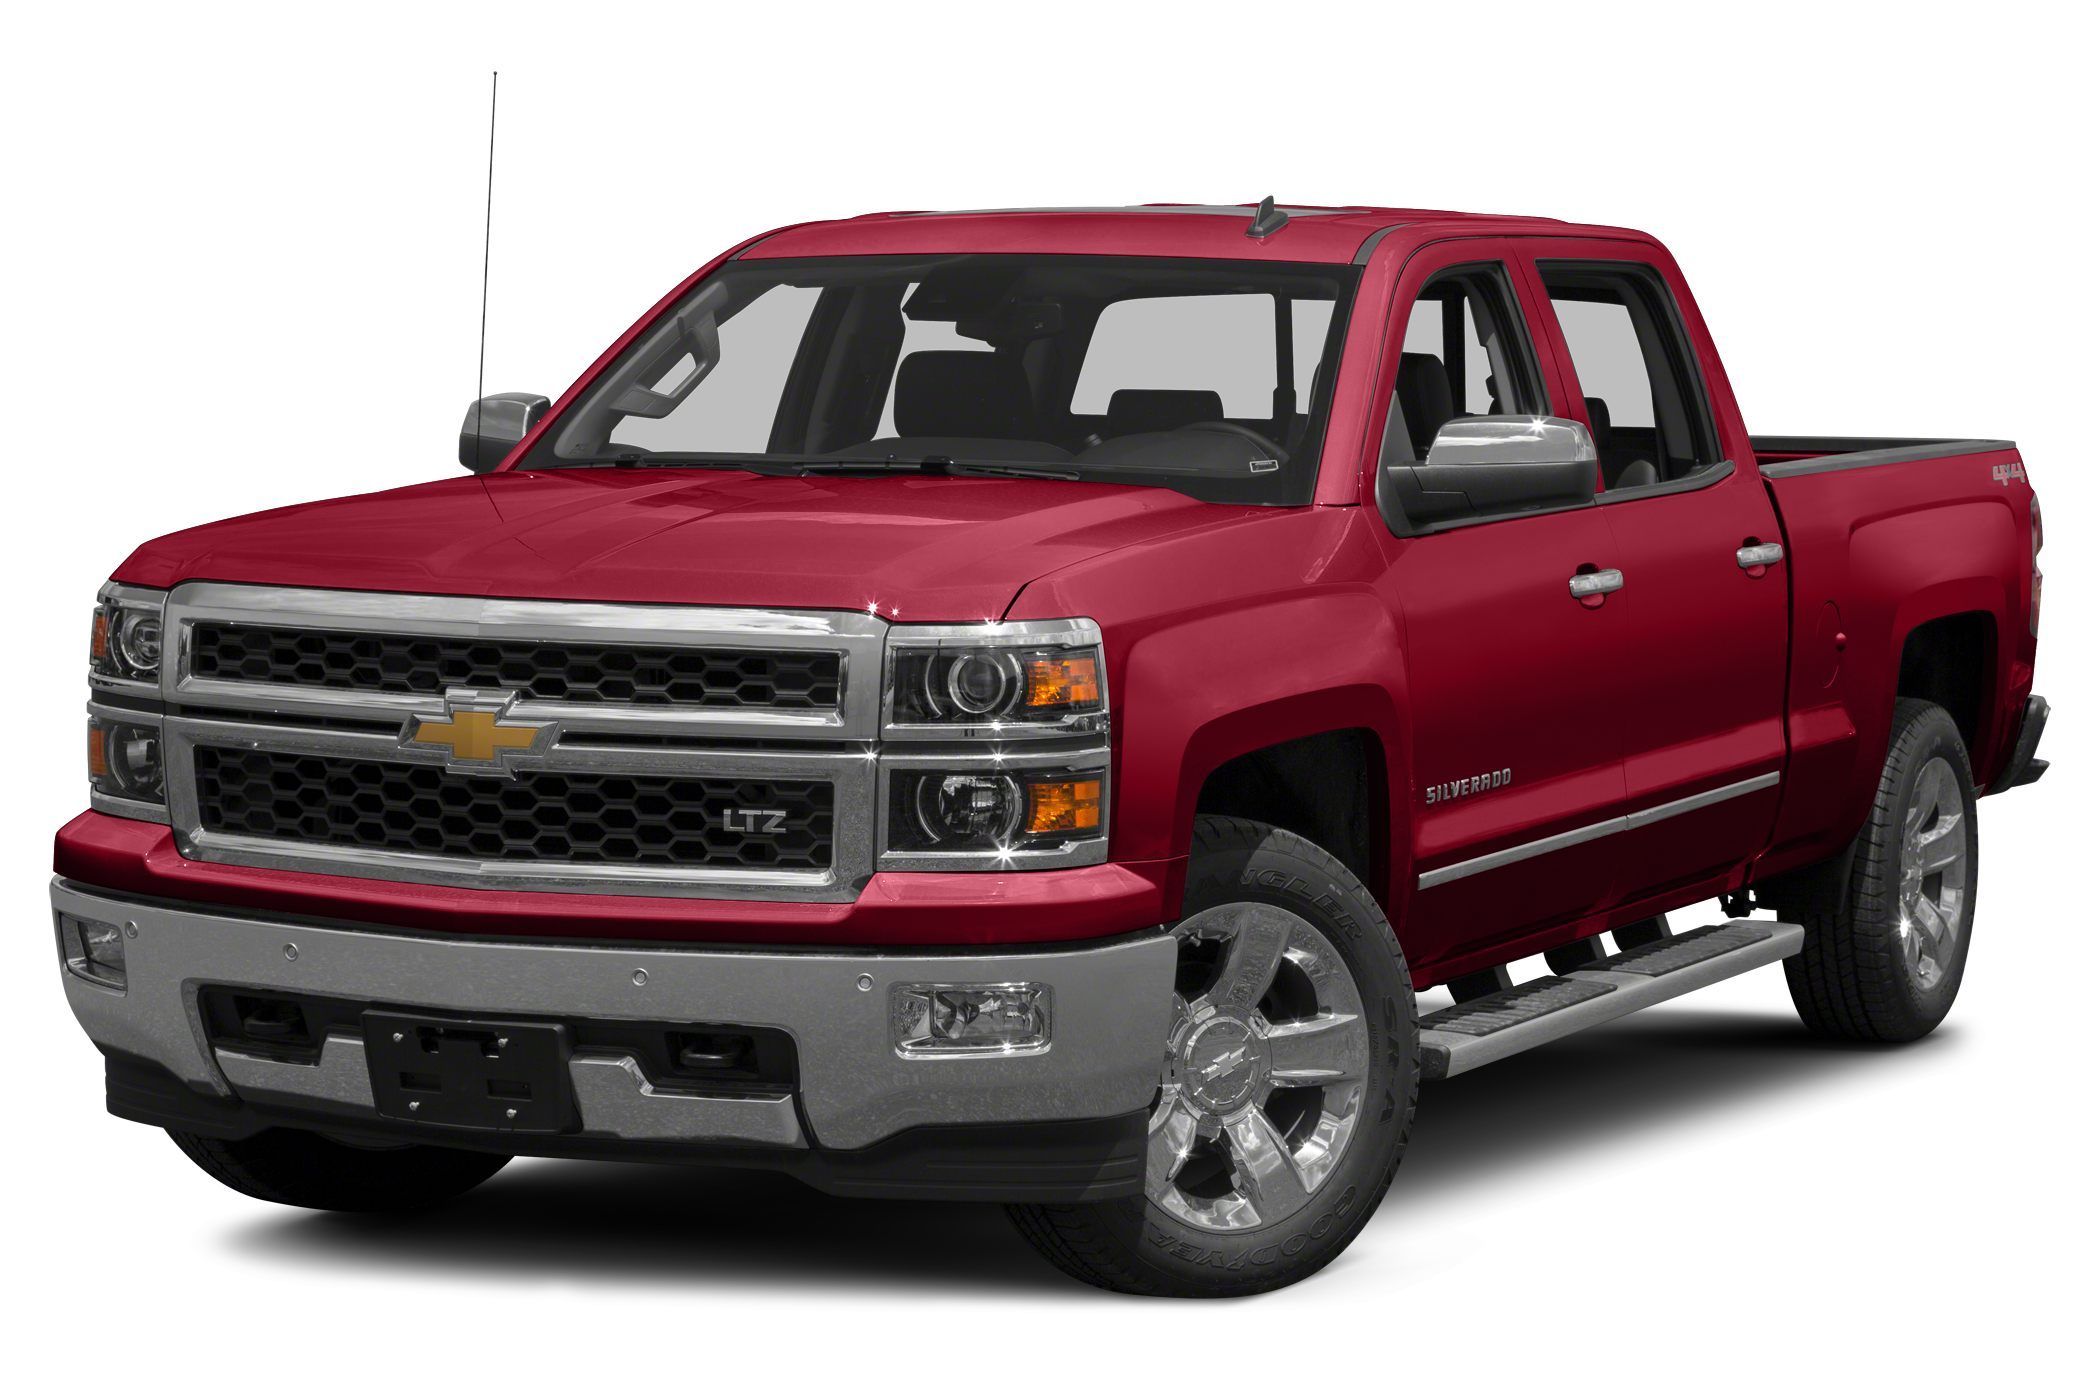 2014 Chevrolet Silverado 1500 LT A ONE OWNER LOCAL TRADE-IN WITH LOW MILES Buy with confidence -